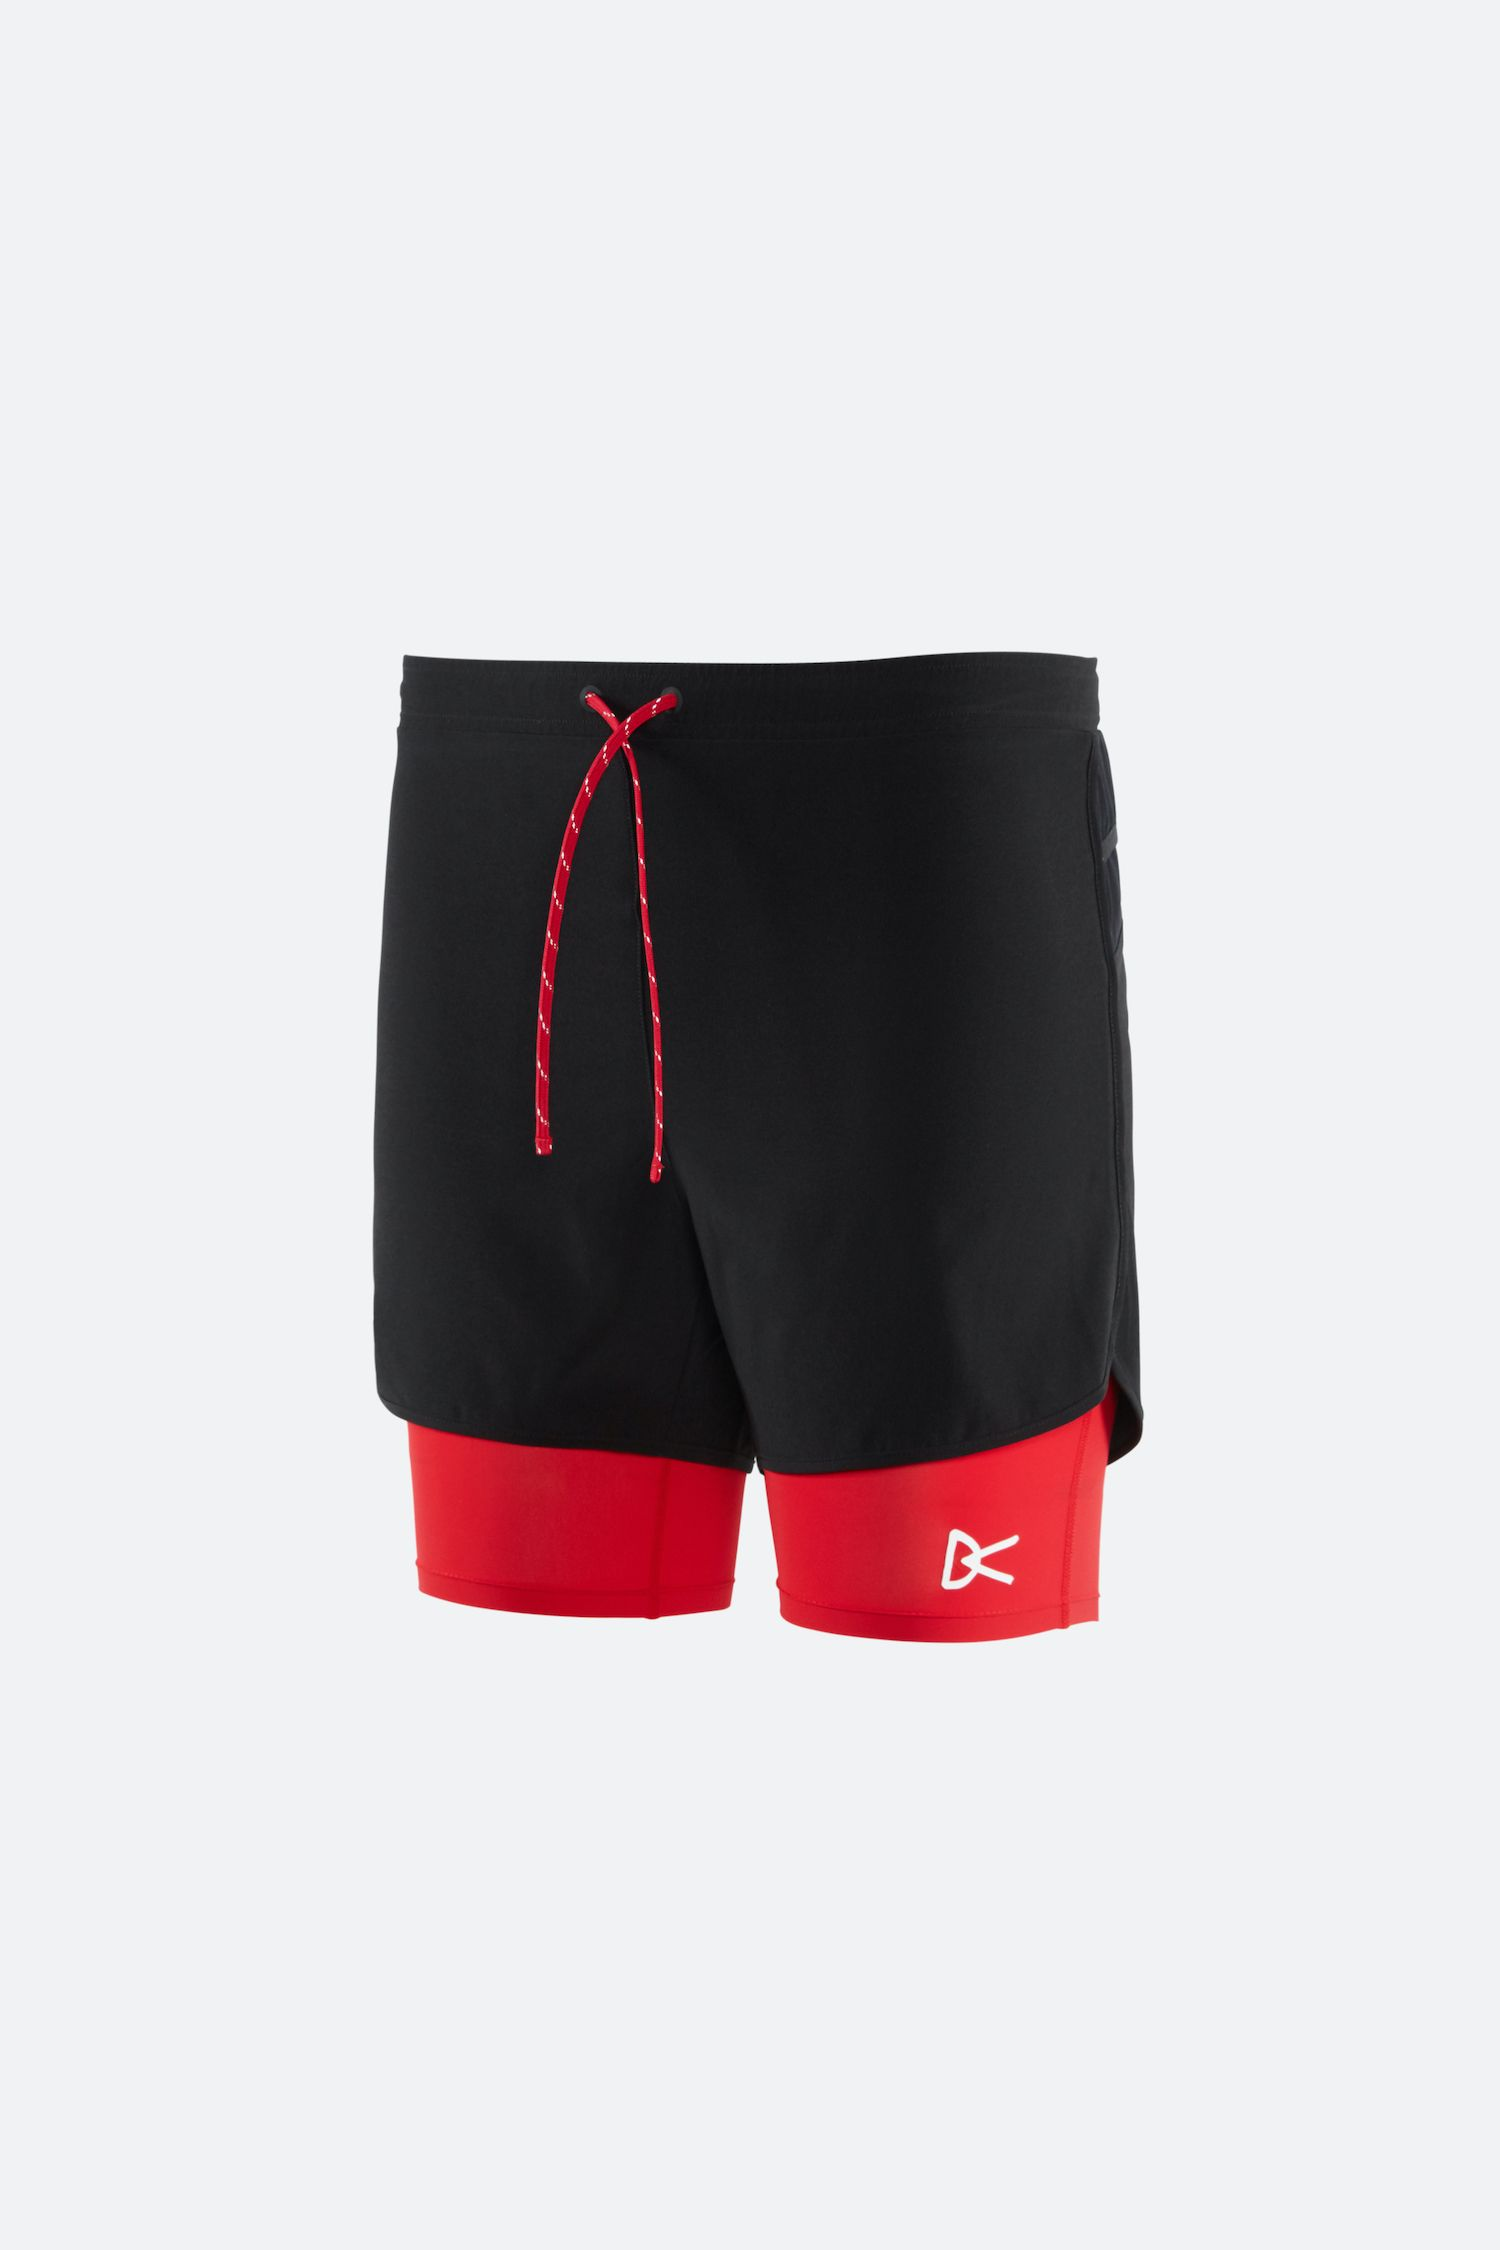 Aaron Layered Shorts, Black/Red